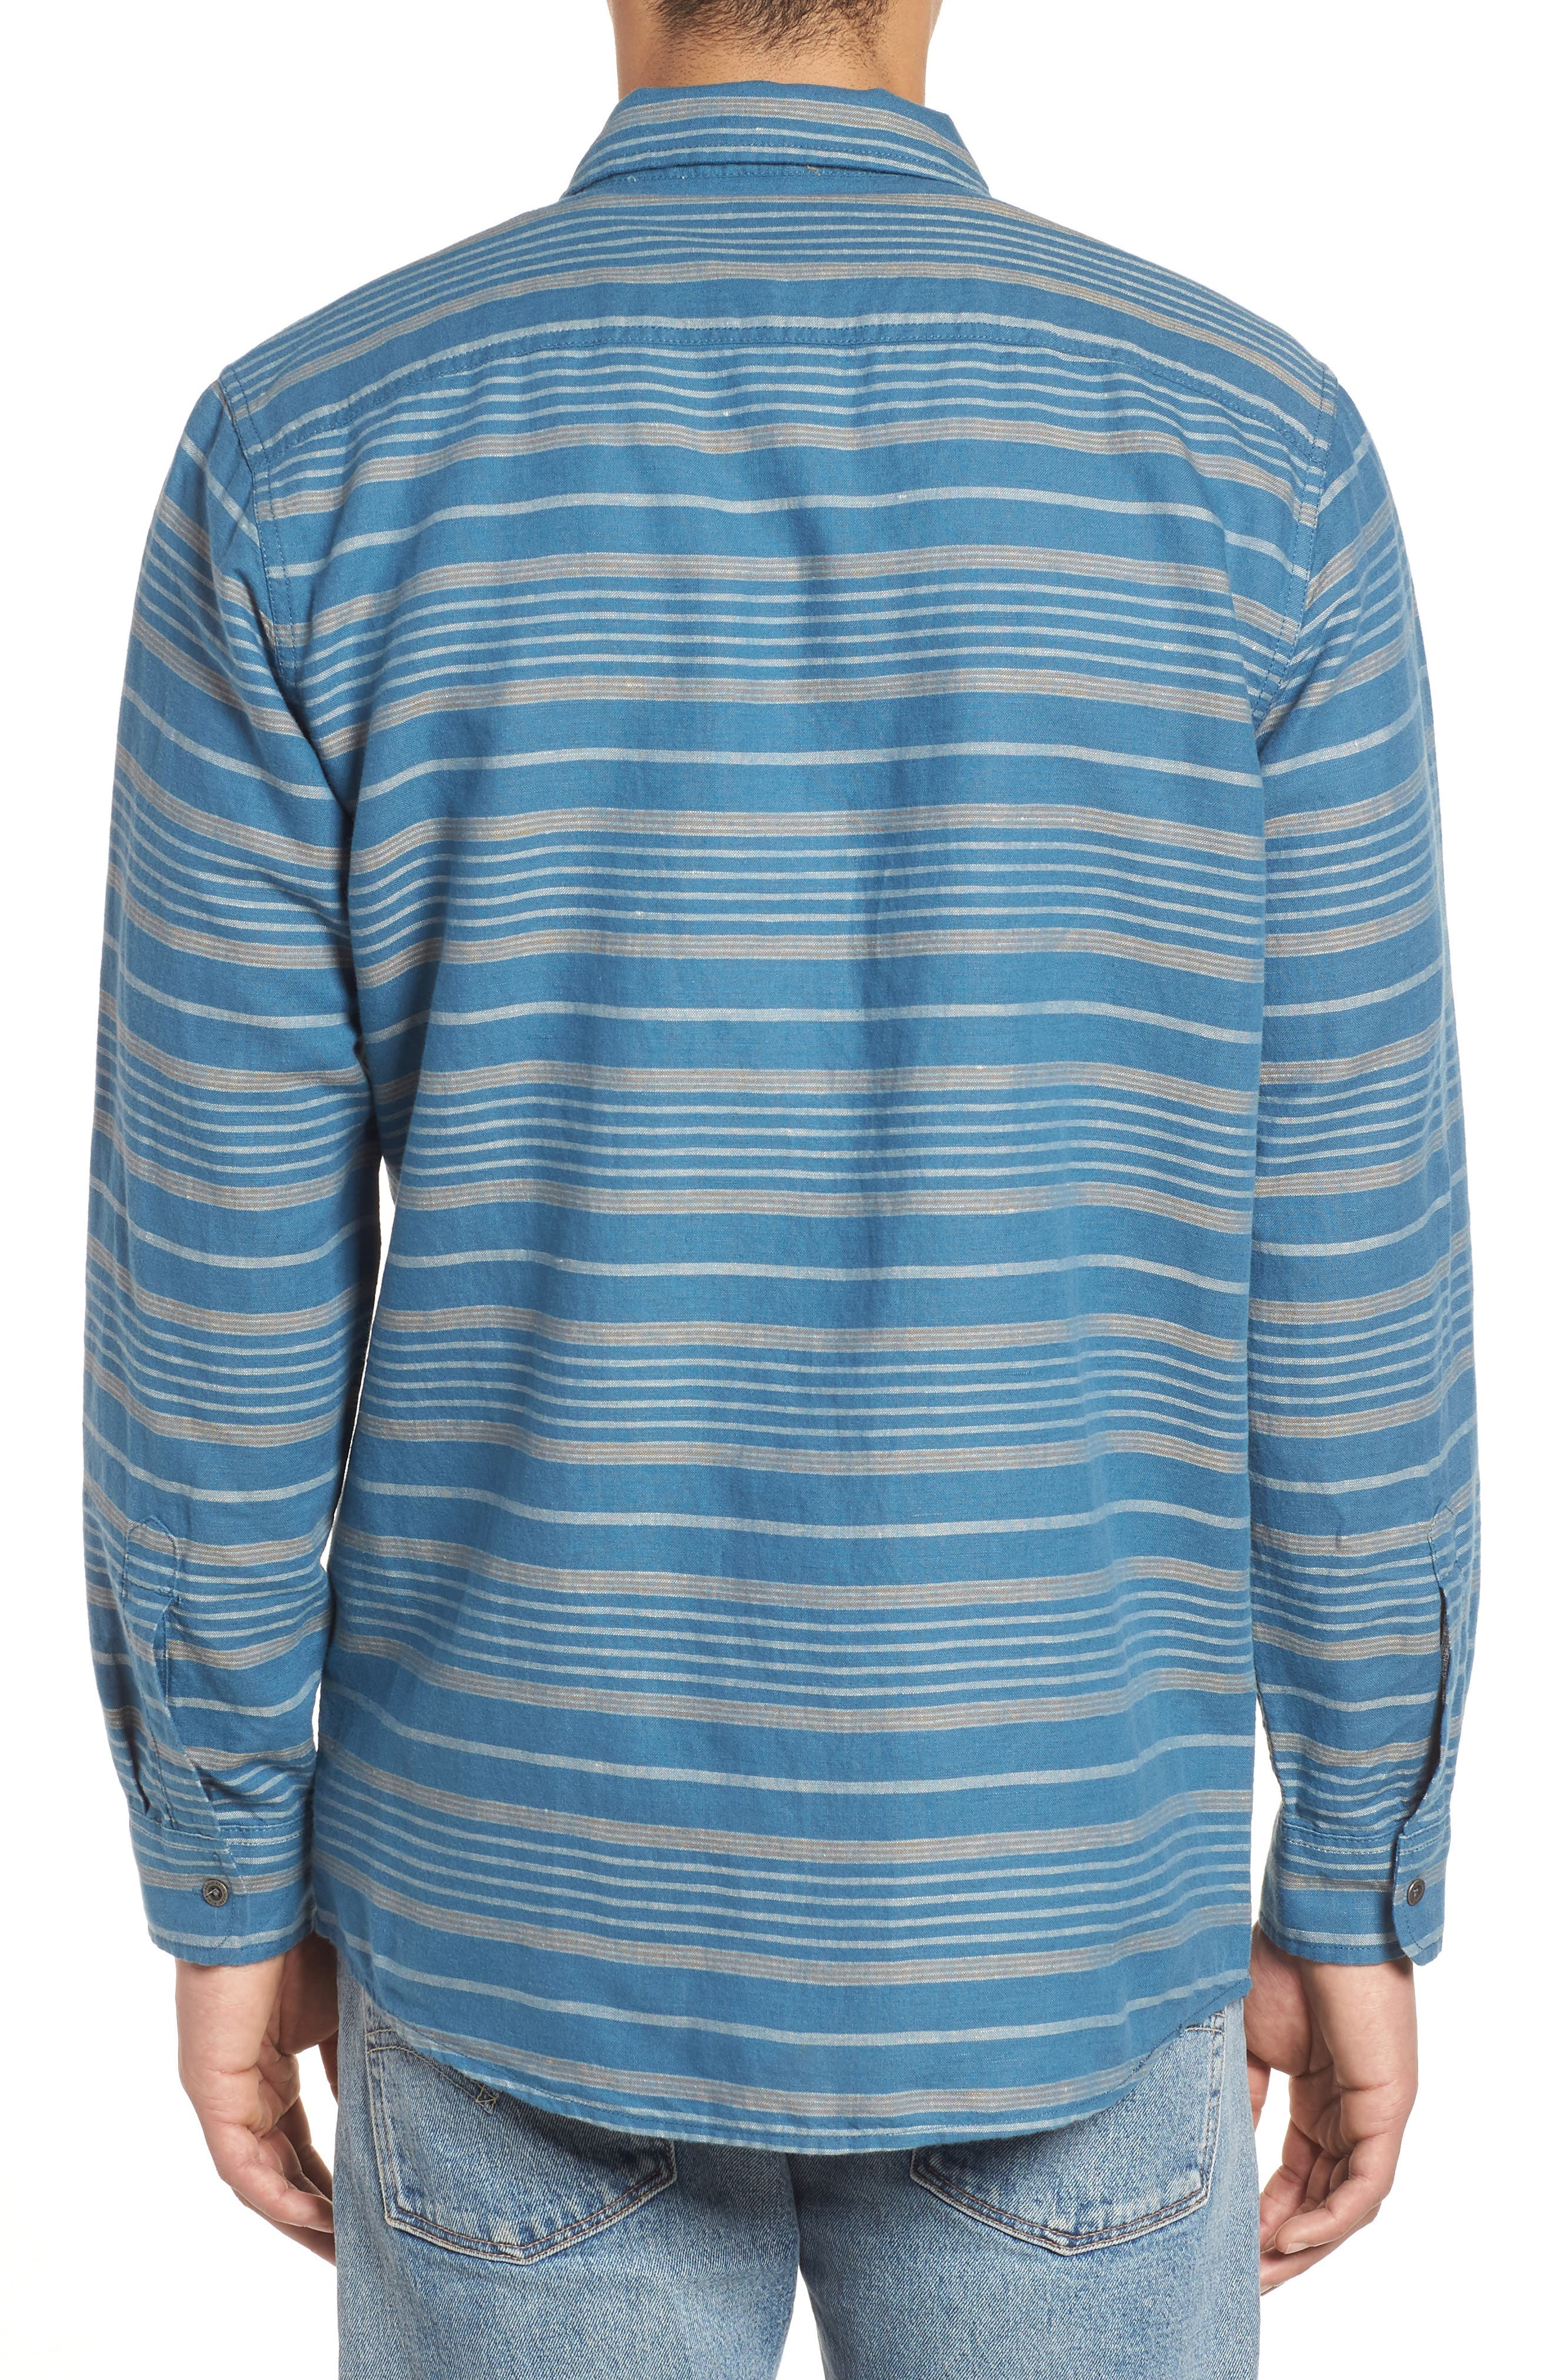 Kay Street Fitted Shirt,                             Alternate thumbnail 2, color,                             425